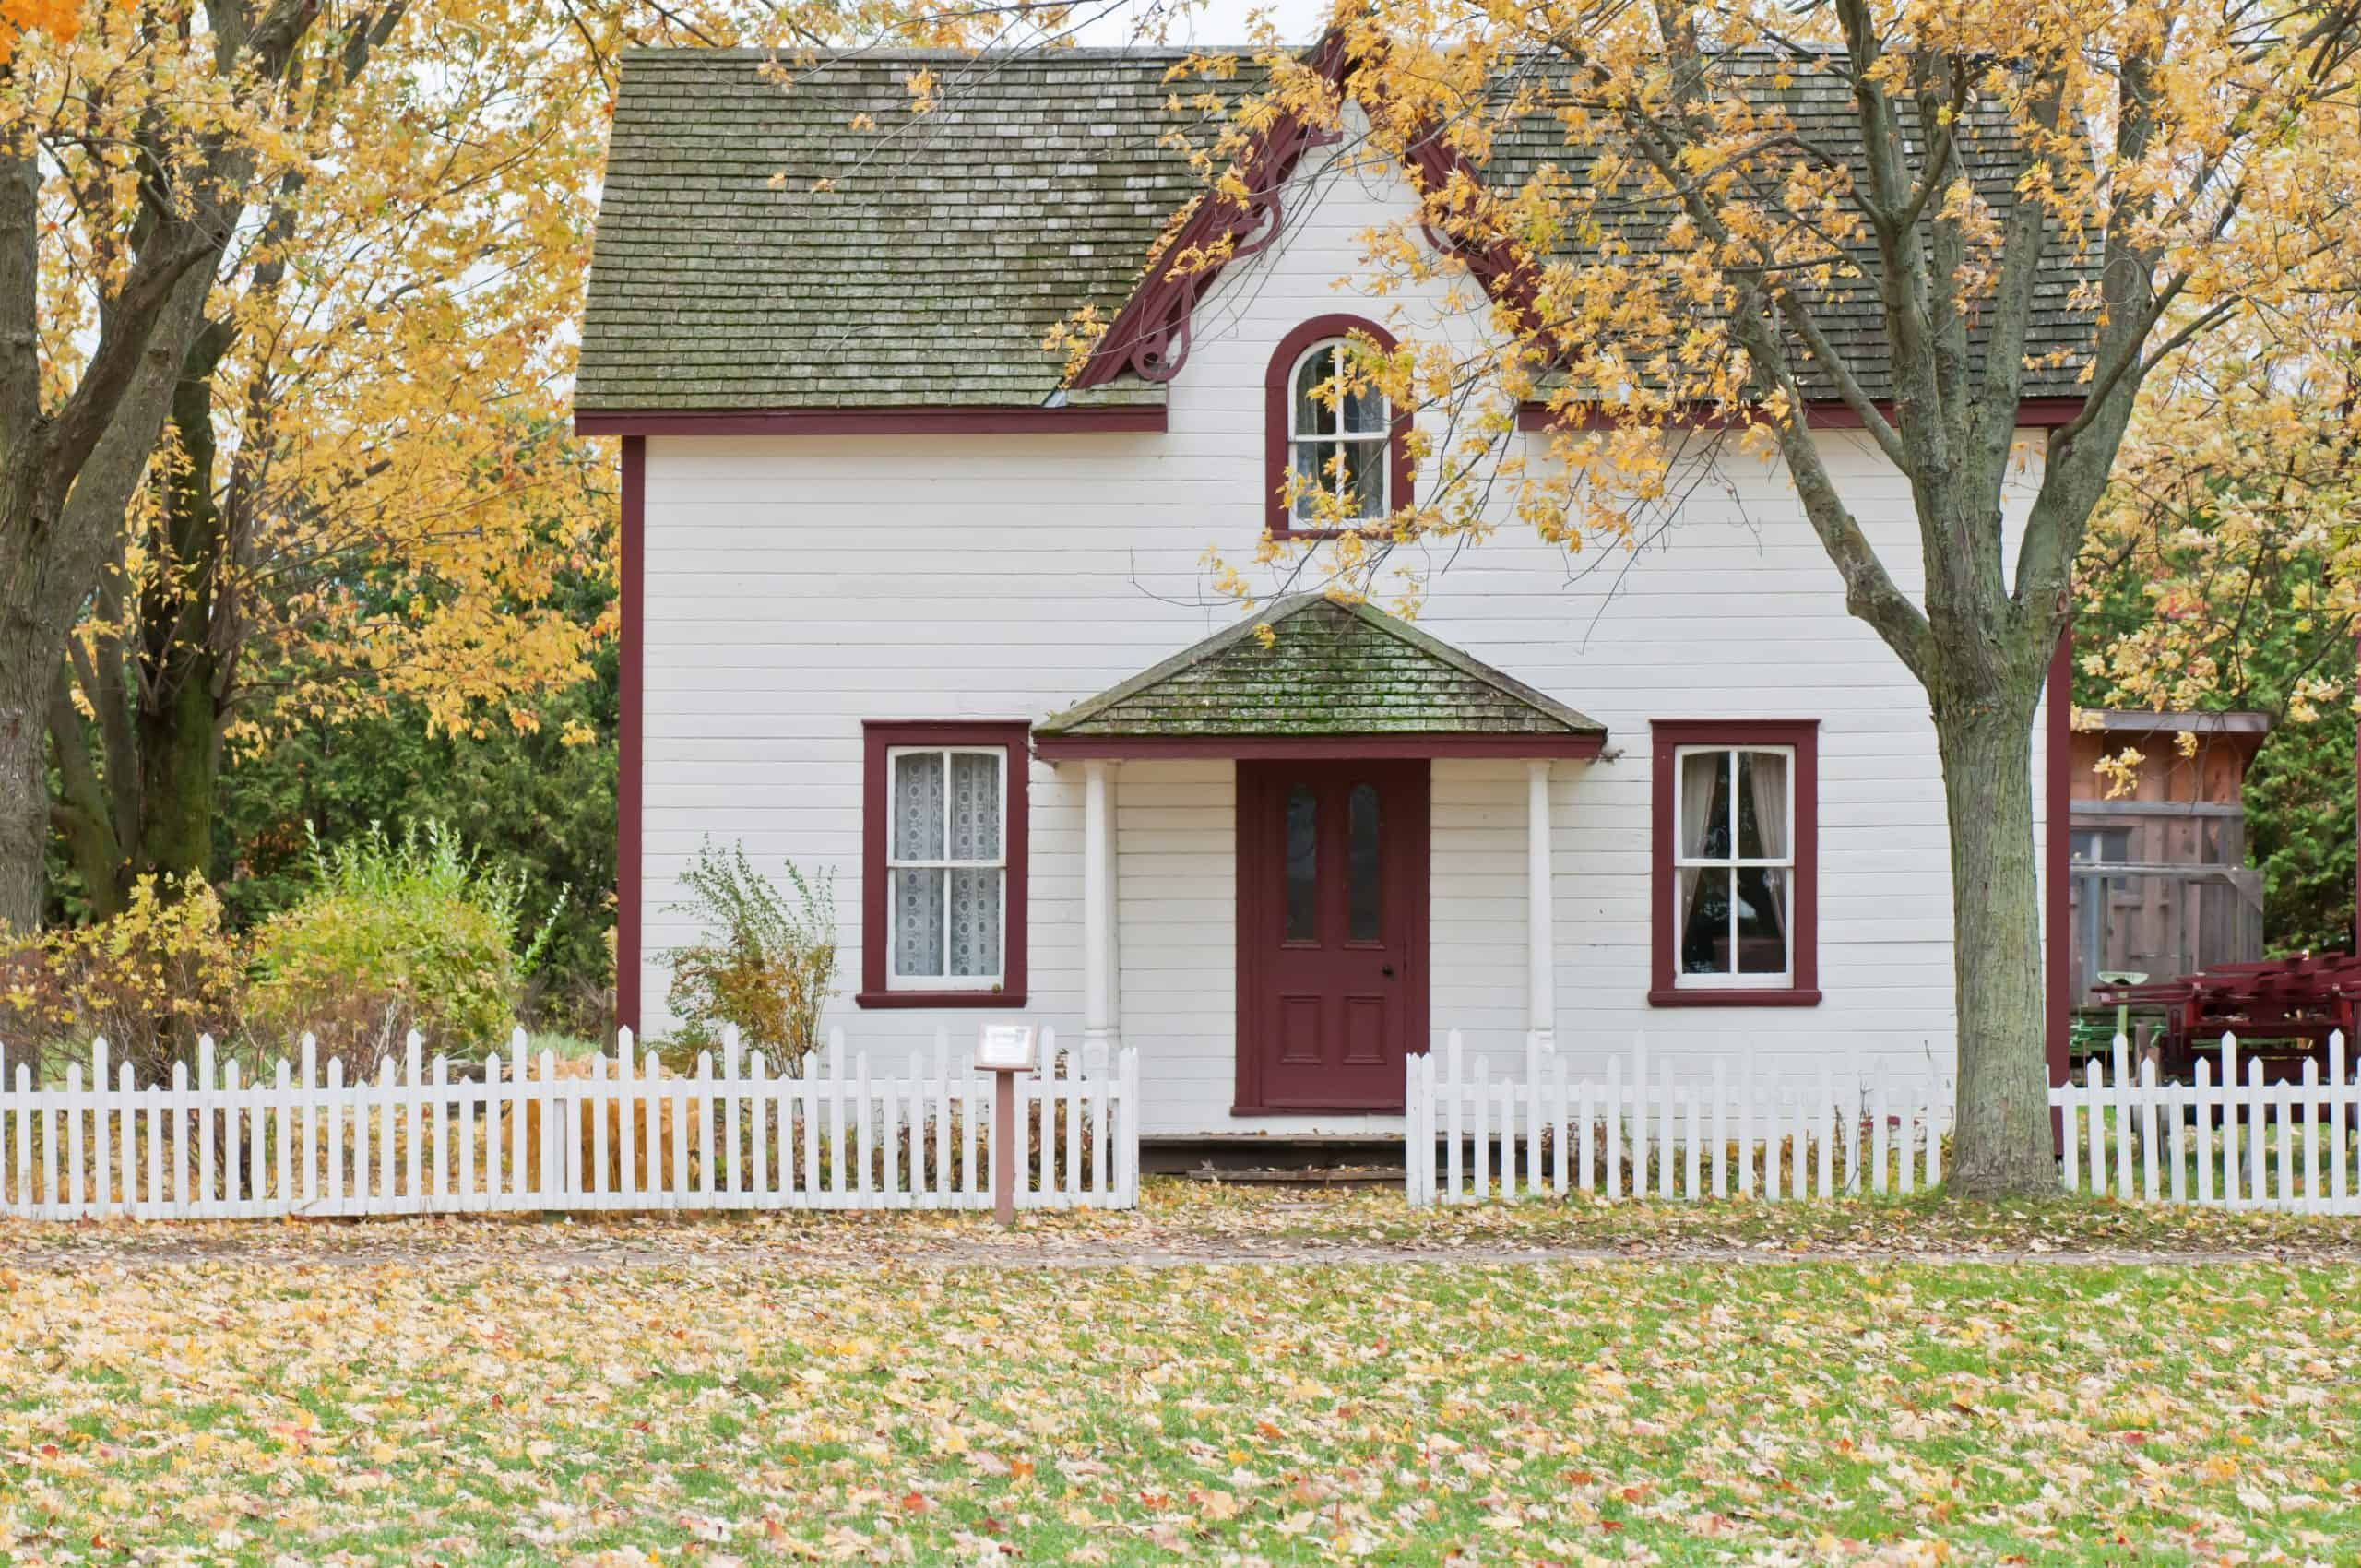 new build vs old house: which is better?